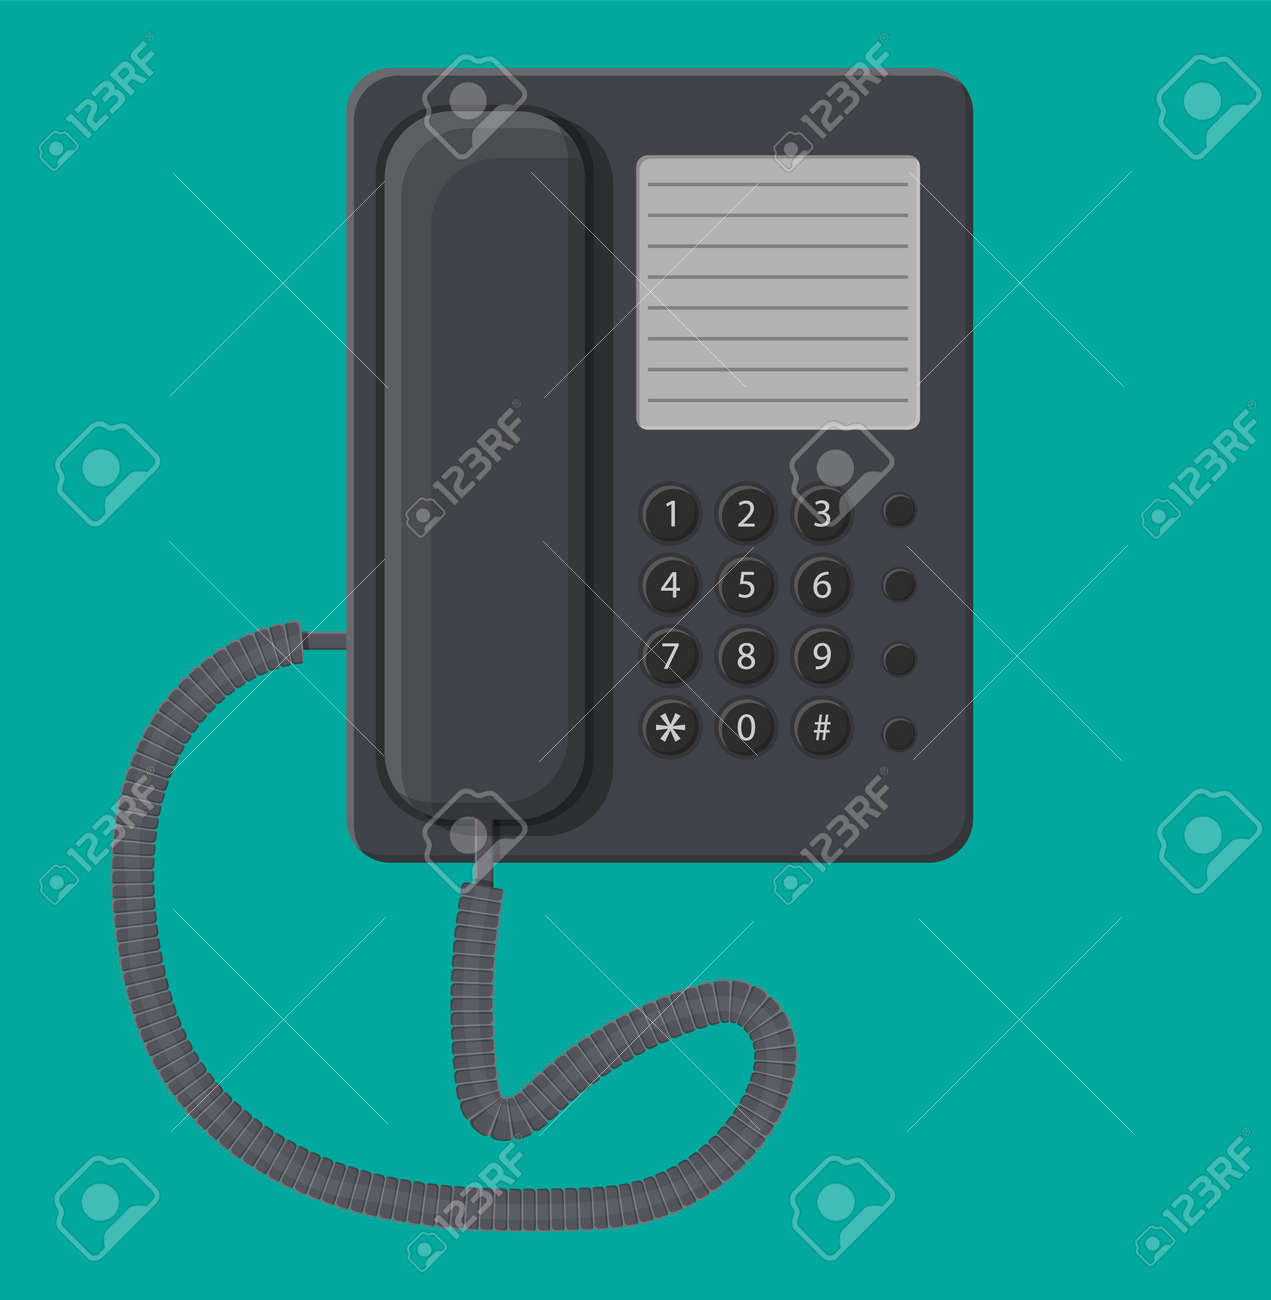 hight resolution of office black wired phone stock vector 83959984